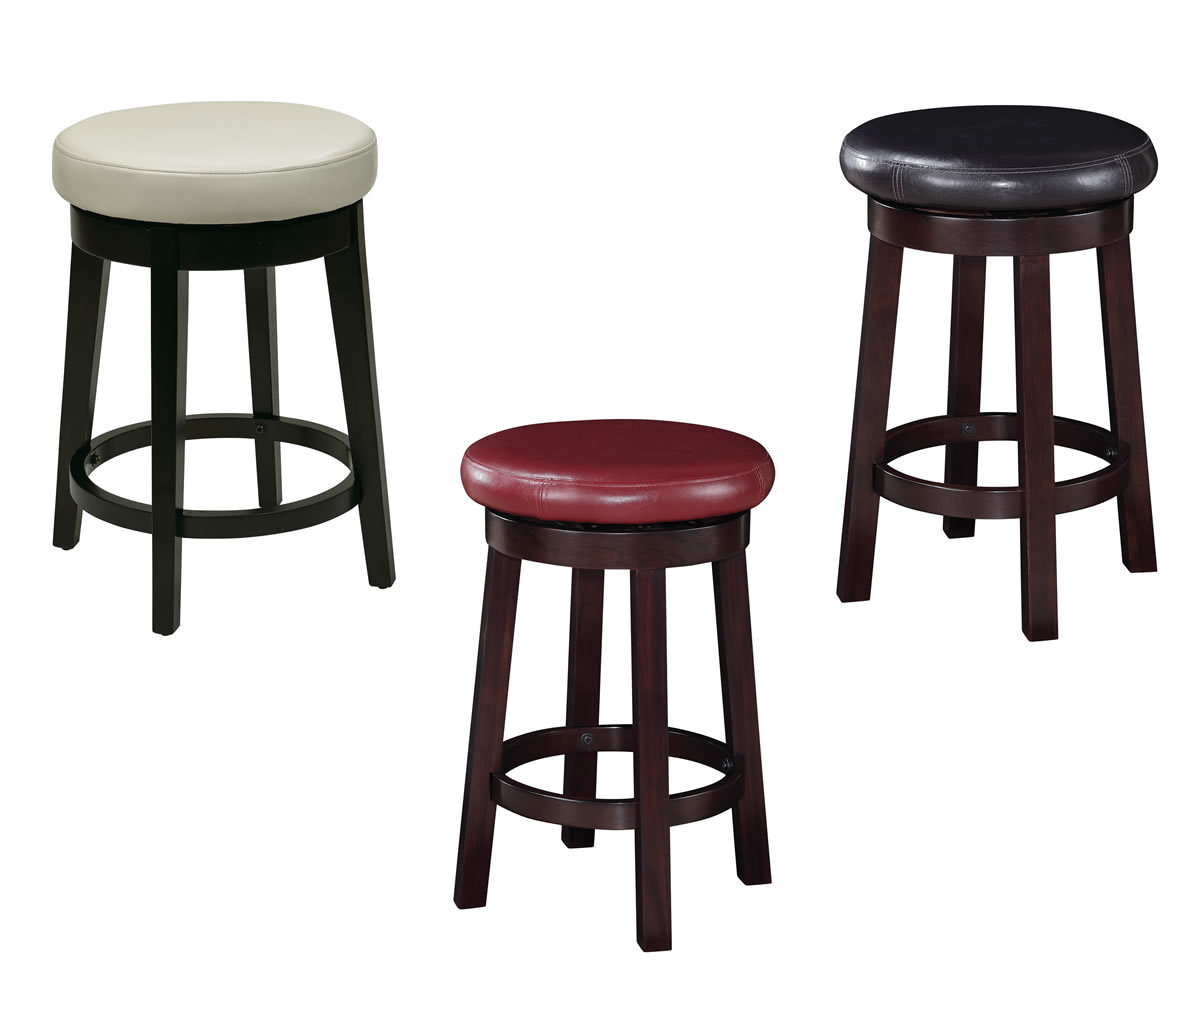 bar stool baby high chair vintage wood 24 inch seat round faux leather